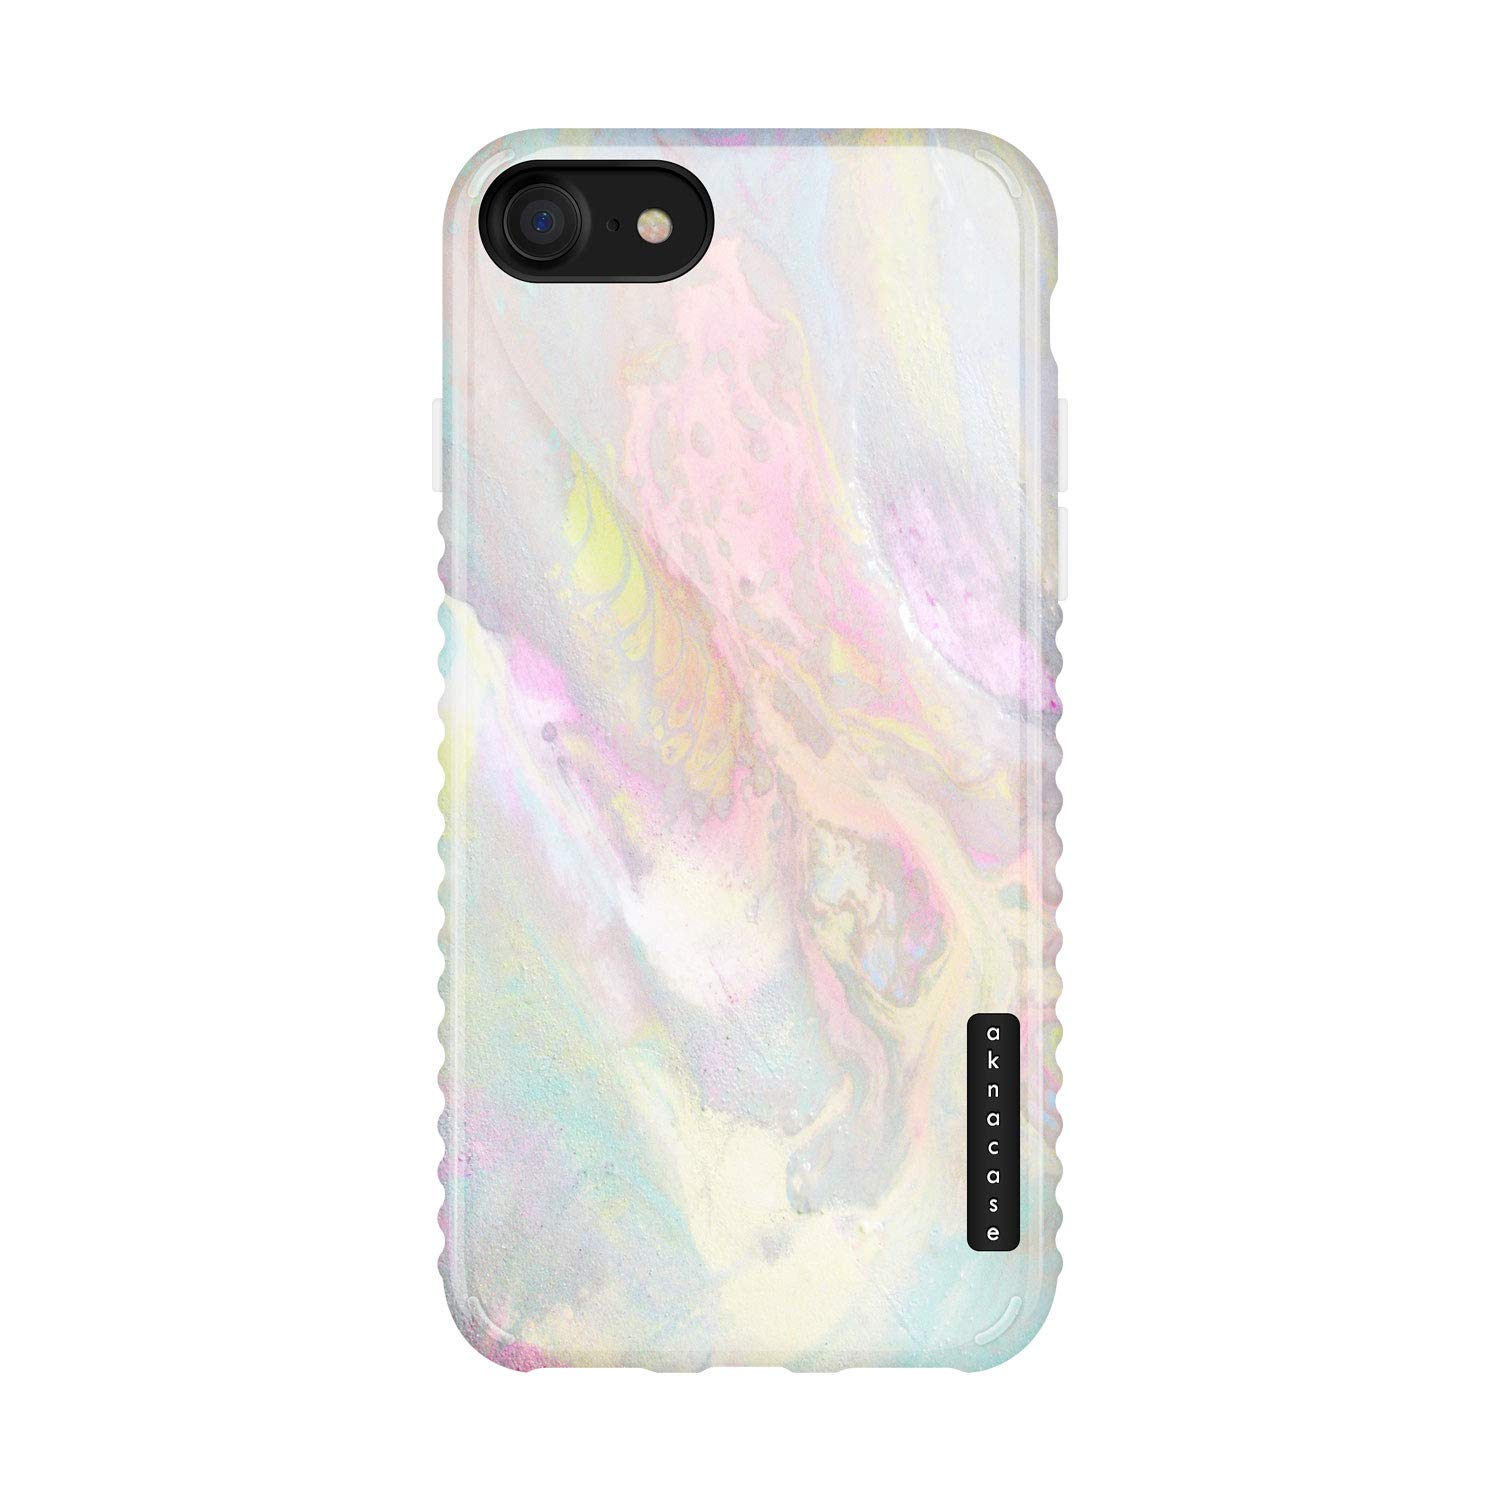 iPhone 8 & iPhone 7 & iPhone SE [2020 Released] case Watercolor, Akna Collection Flexible Silicon Cover for iPhone 8 & iPhone 7 & iPhone SE [2020 Released] (830-U.S)